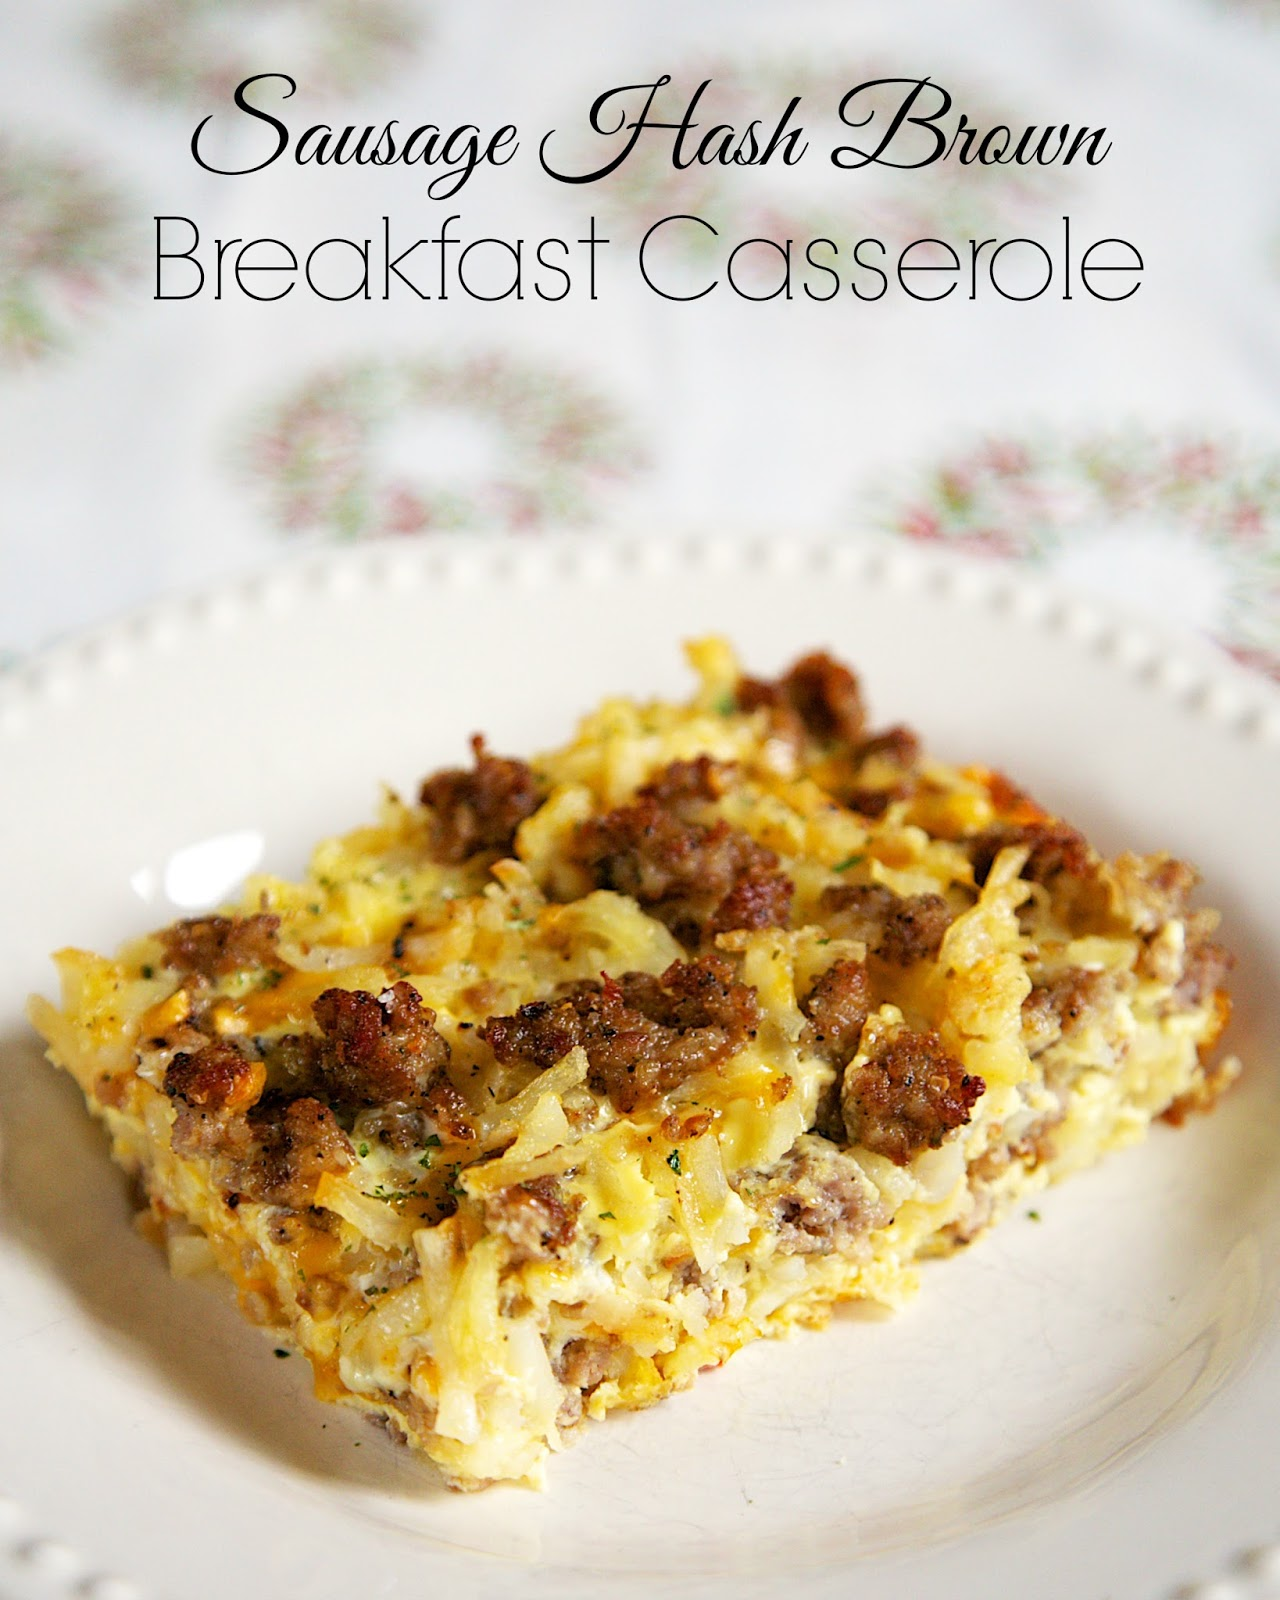 3-Cheese Breakfast Casserole combines cheddar, Swiss and cottage cheese along with hash browns and your favorite breakfast meat! 3-Cheese Breakfast Casserole is one of my favorite breakfast casserole recipes, and I've tried quite a few! Although this recipe is traditionally served for breakfast, we often have it for dinner at my house - you.